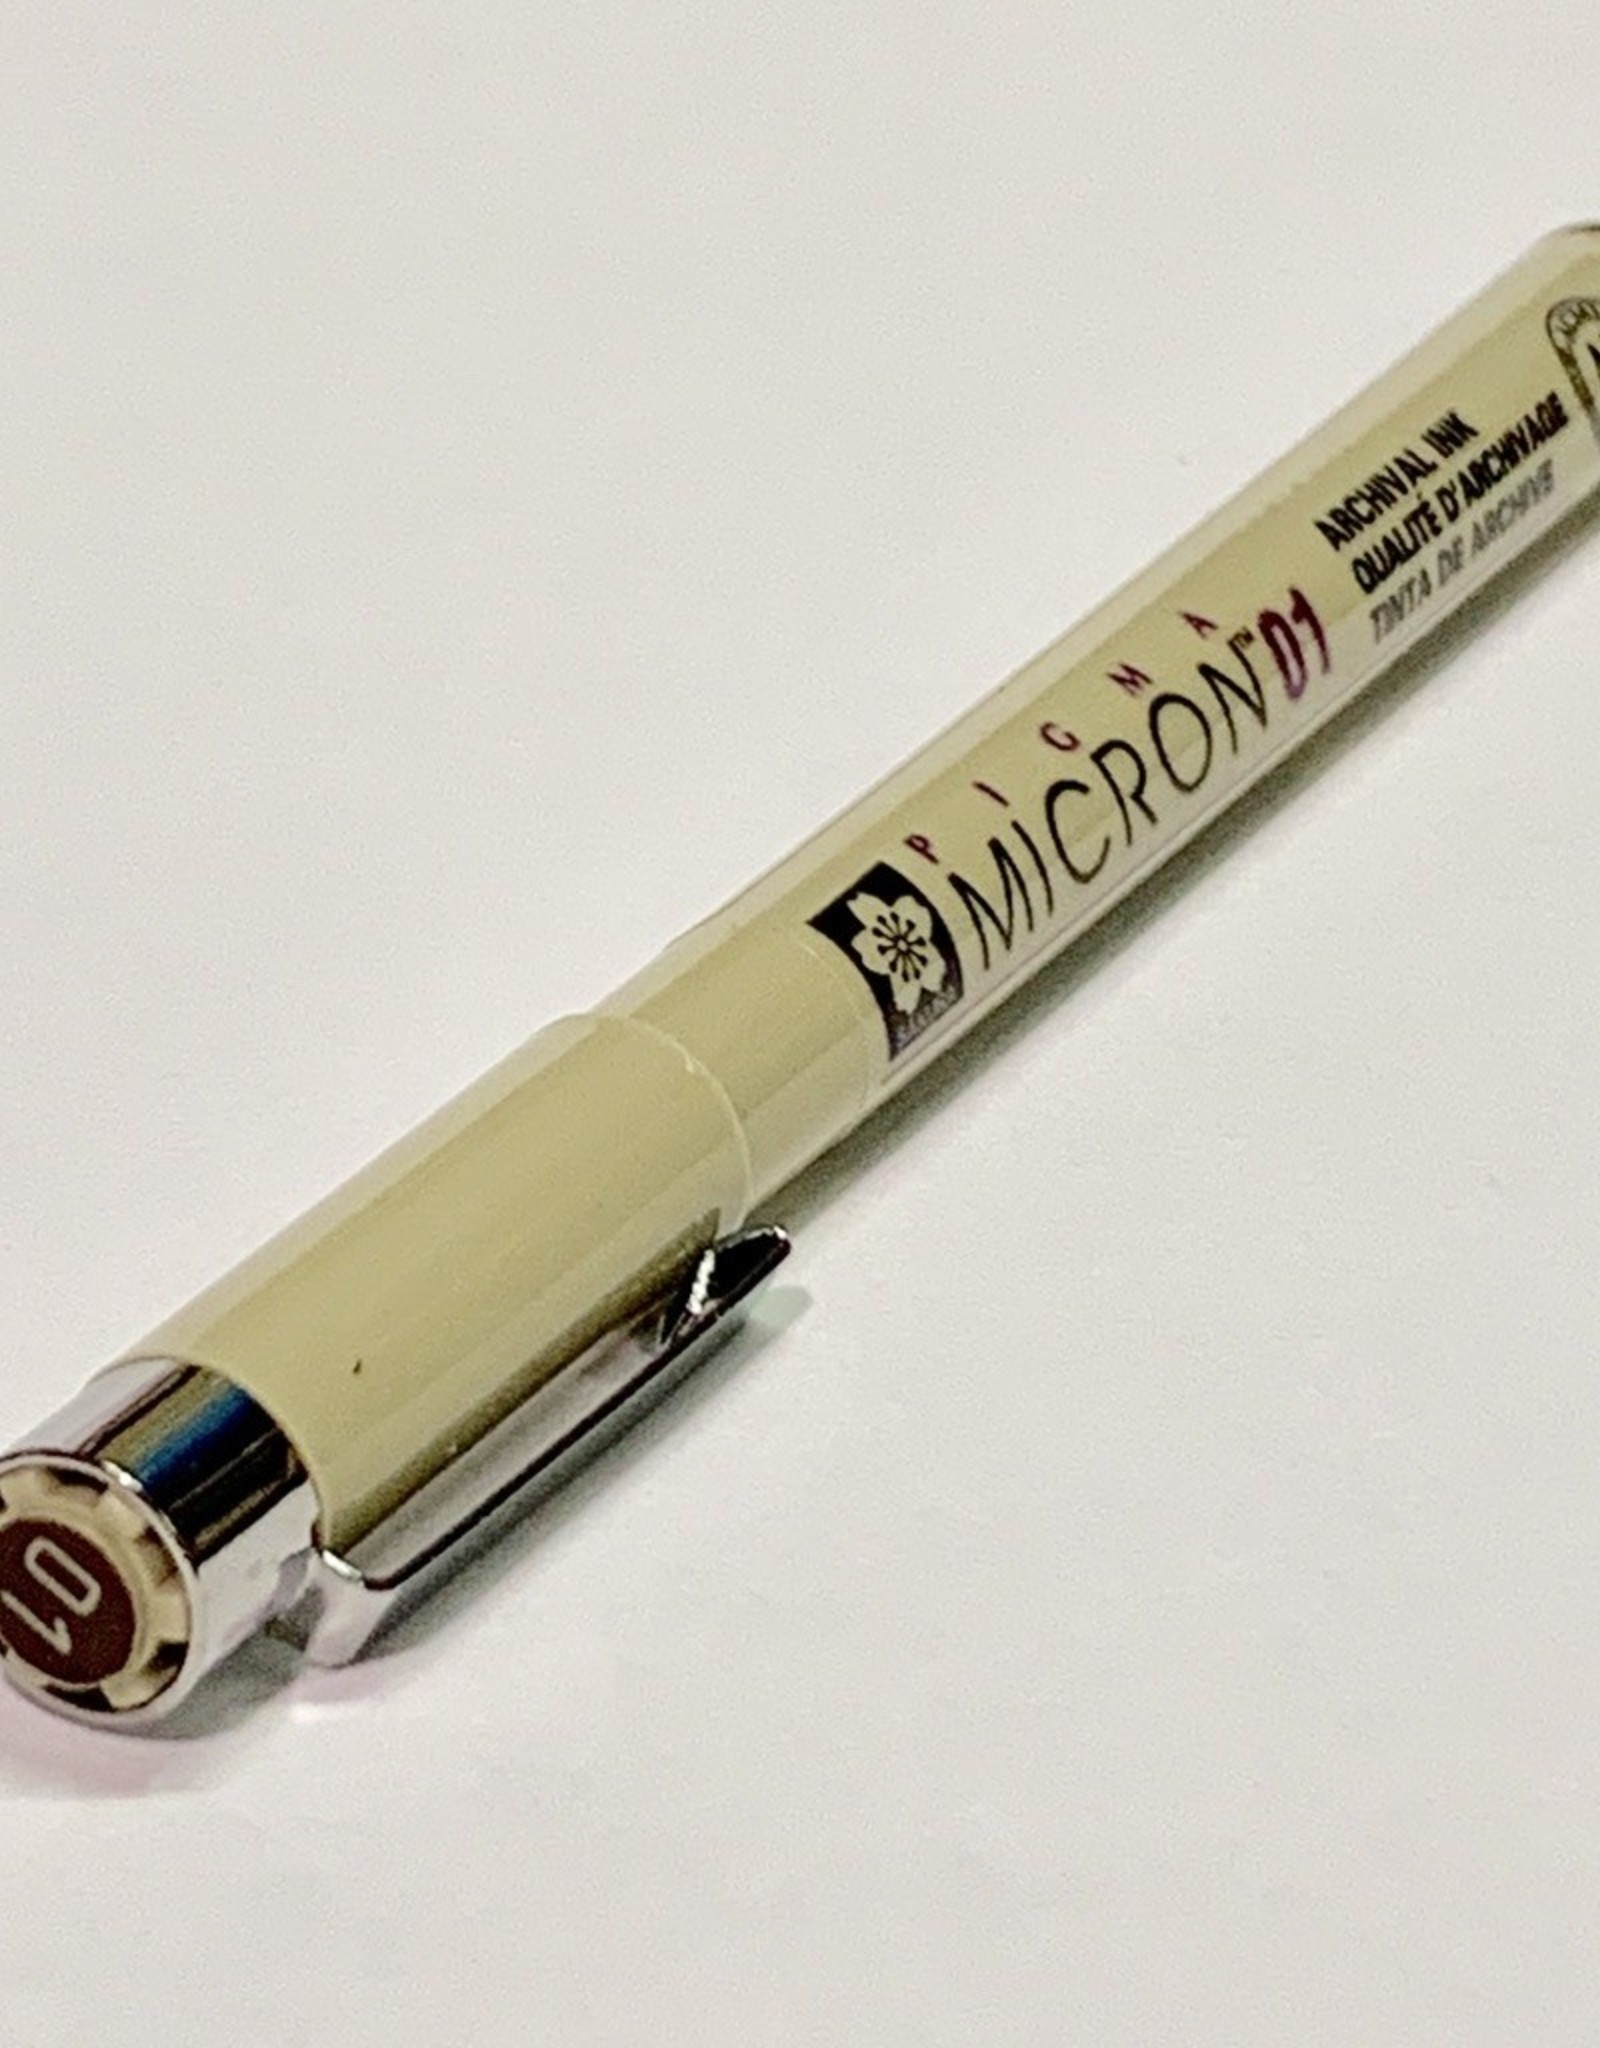 Micron Sepia Pen 01 .25mm